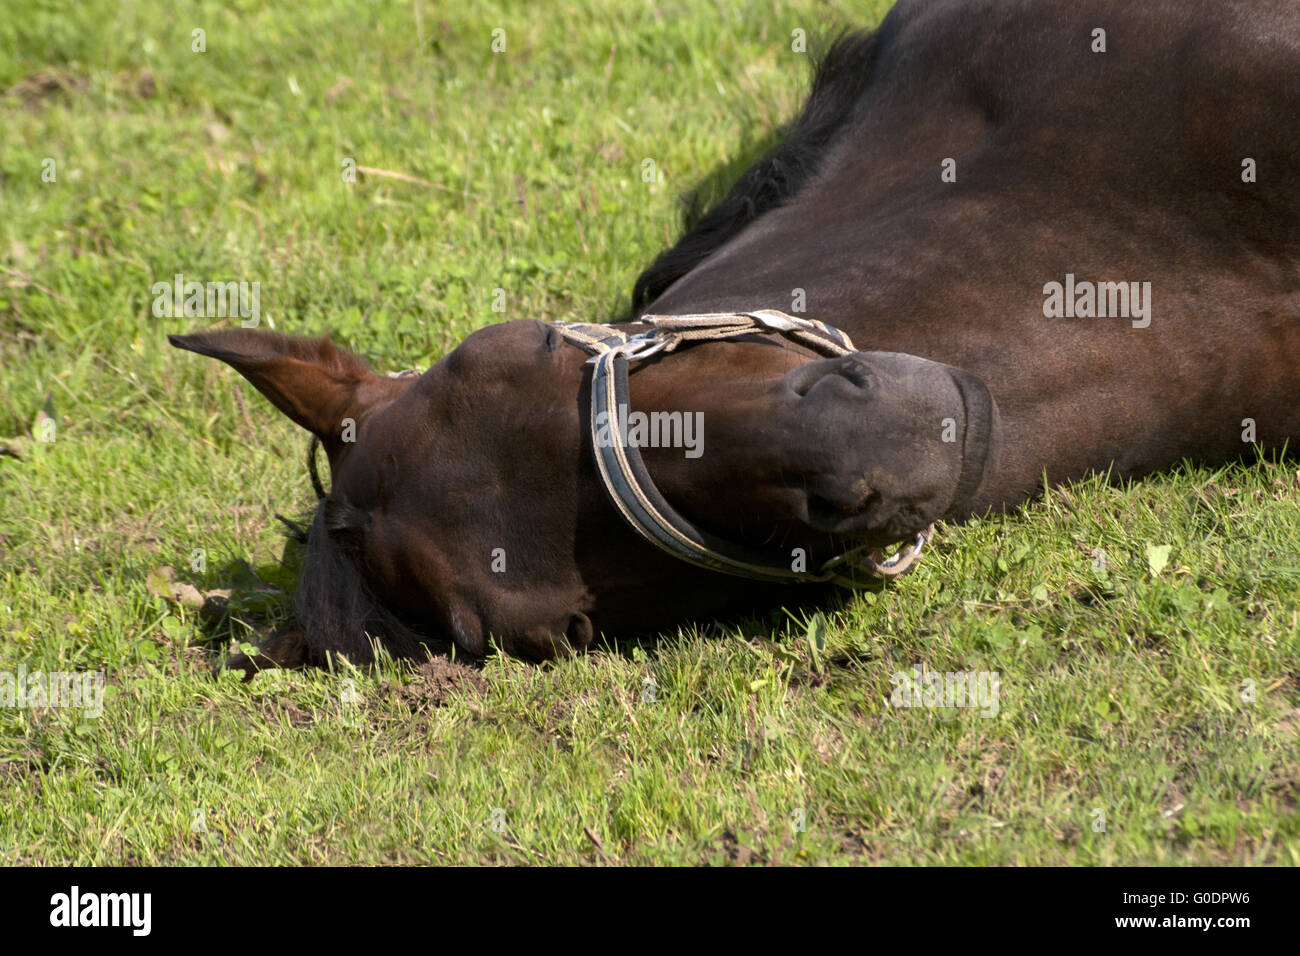 Horse sleep outside on pasture - Stock Image